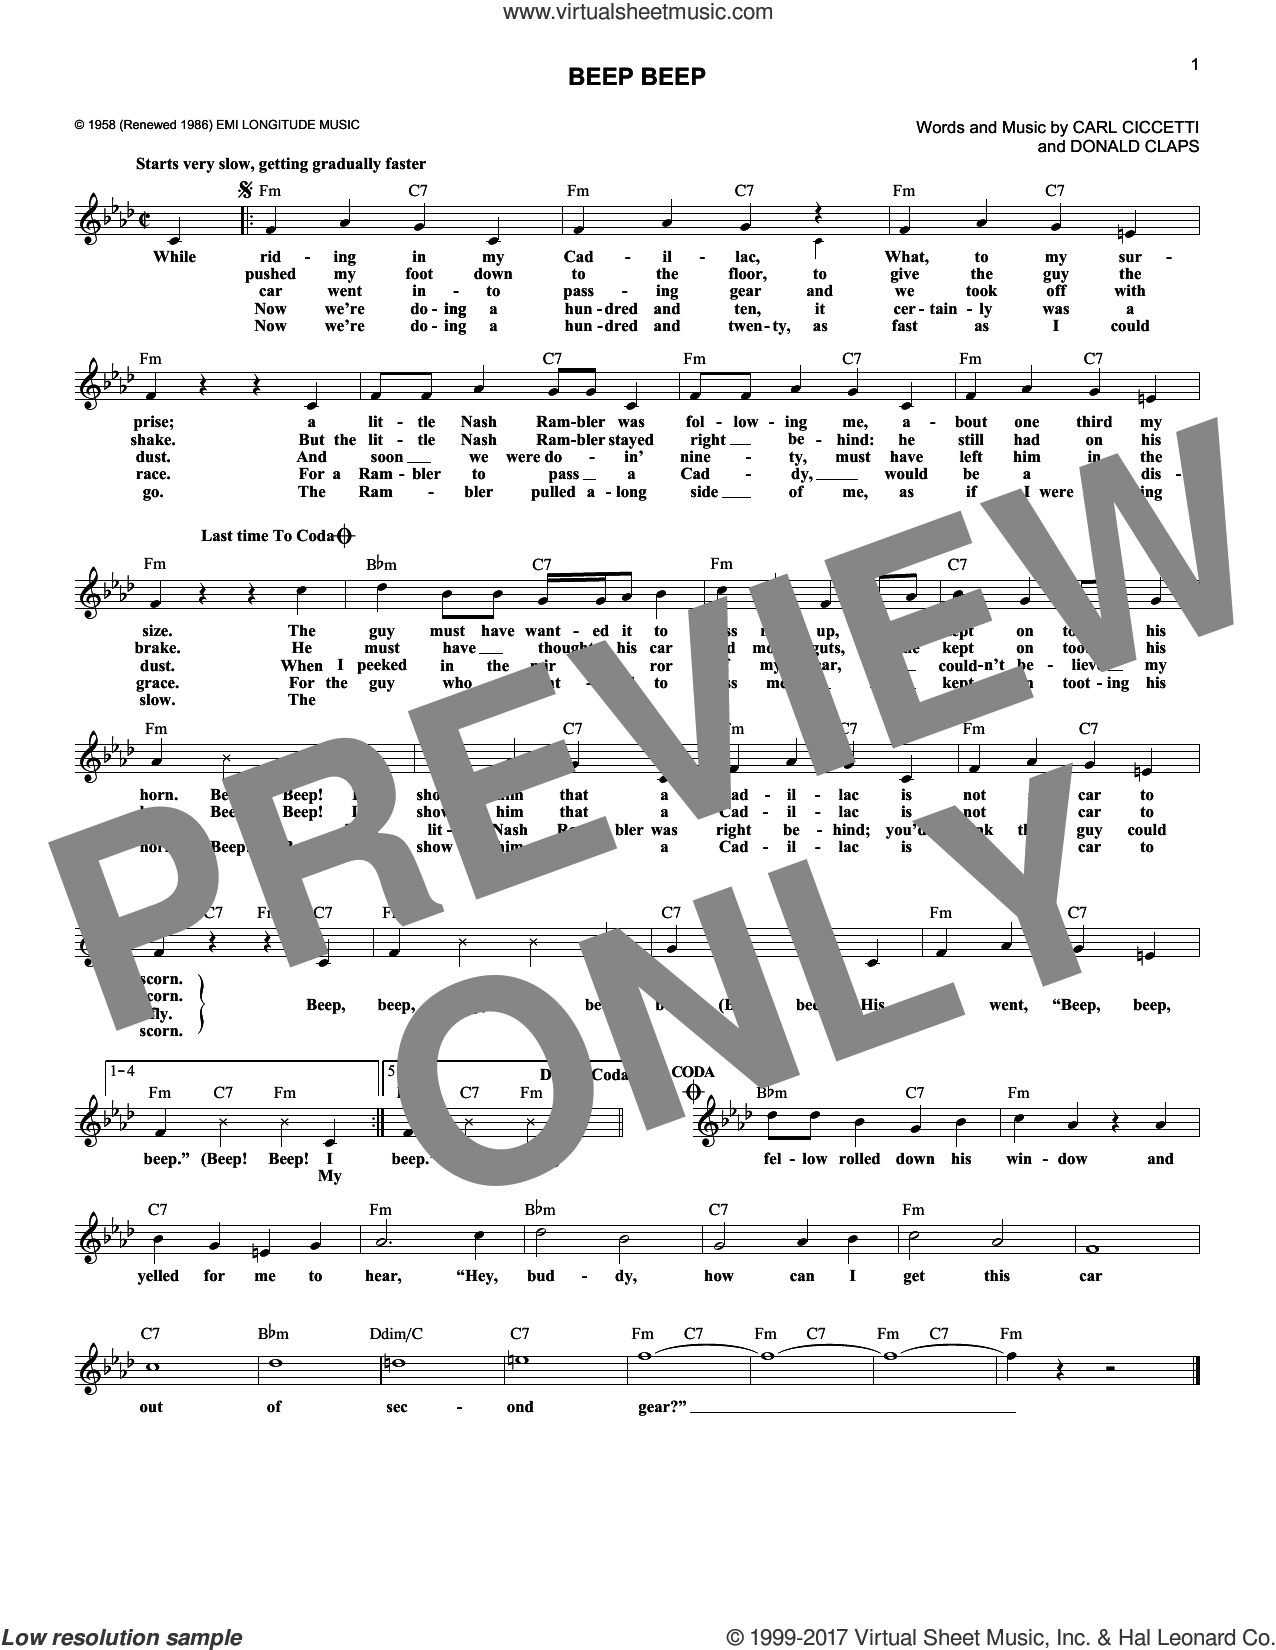 Beep Beep sheet music for voice and other instruments (fake book) by The Playmates, Carl Cicchetti and Donald Claps, intermediate skill level